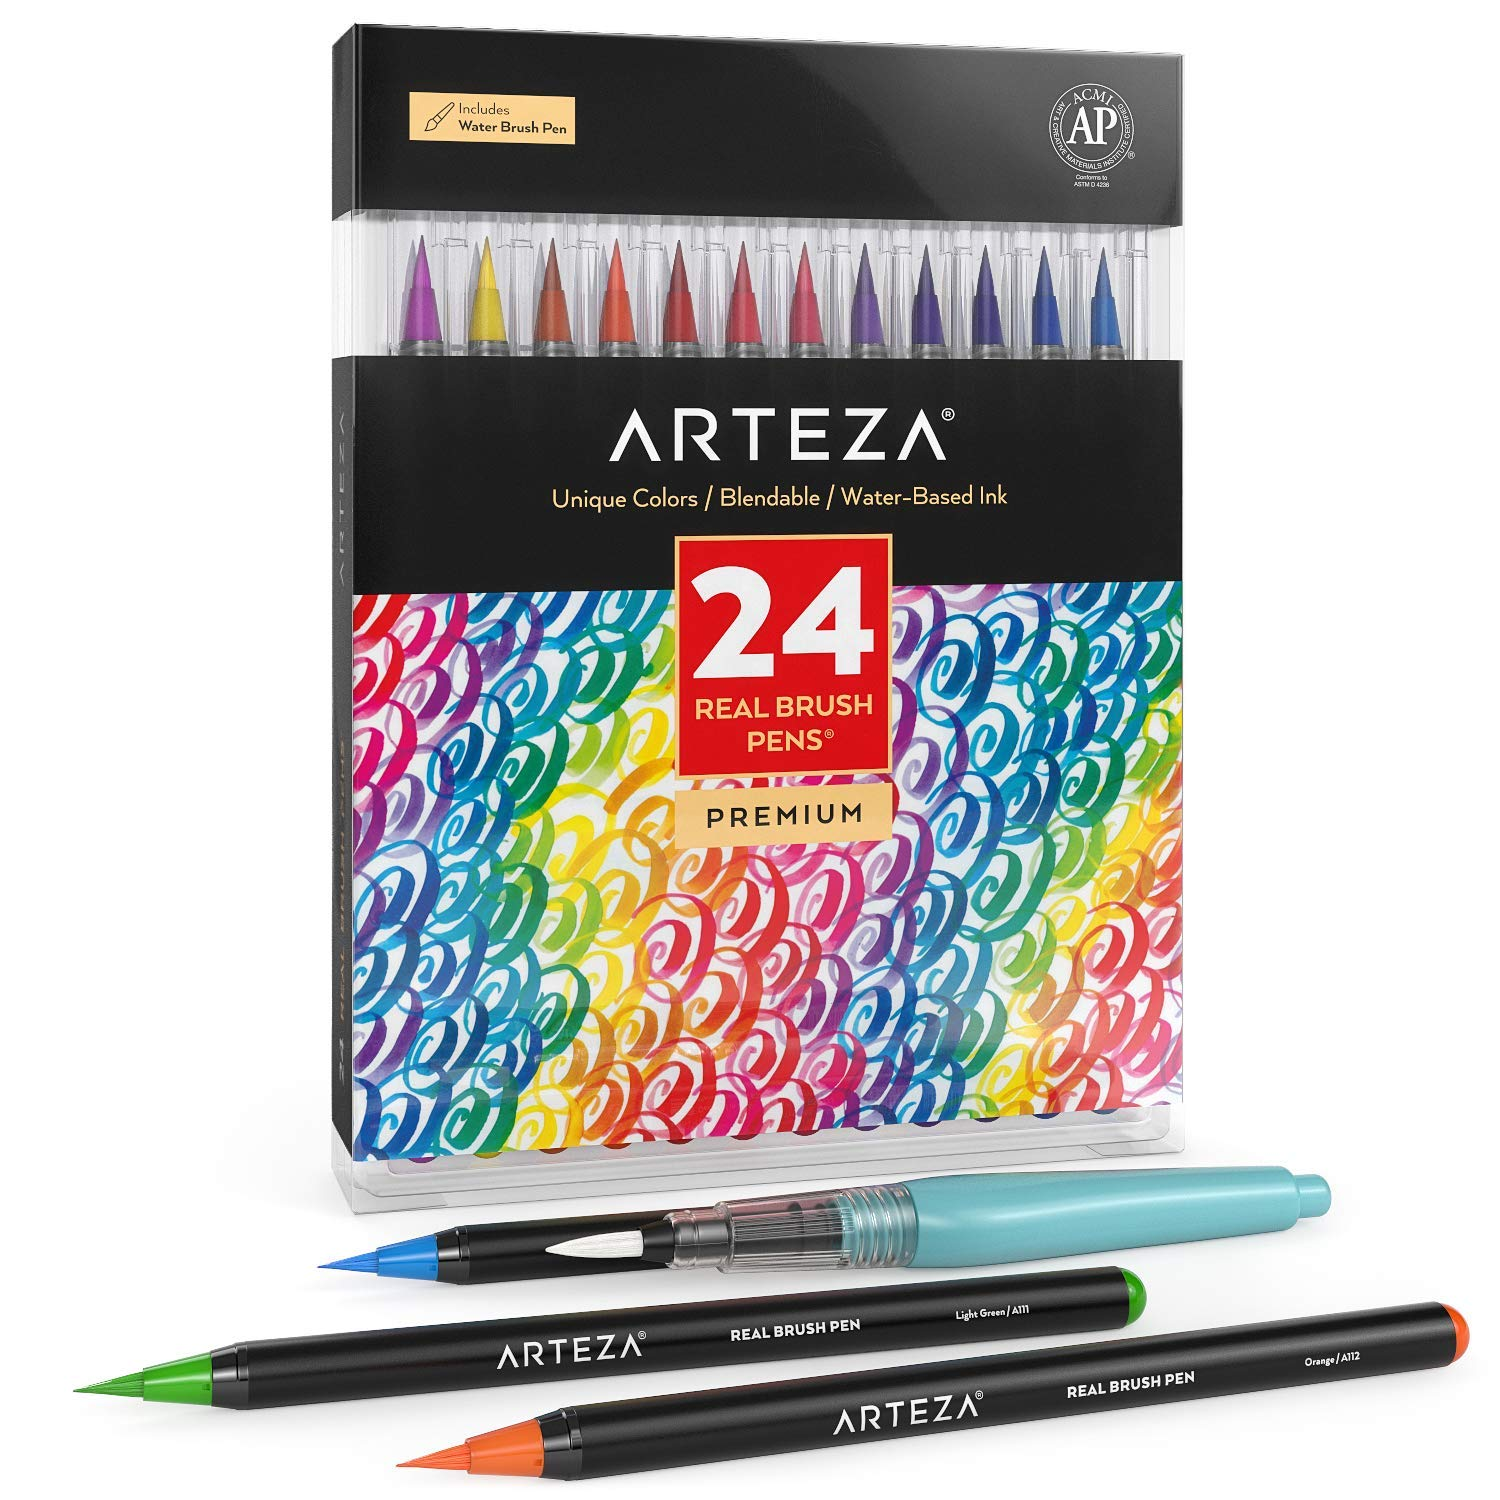 ARTEZA Real Brush Pens, 24Colors for WatercolorPainting withFlexible Nylon BrushTips, Paint Markers for Coloring, Calligraphy and Drawing with Water Brush for Artists and Beginner Painters